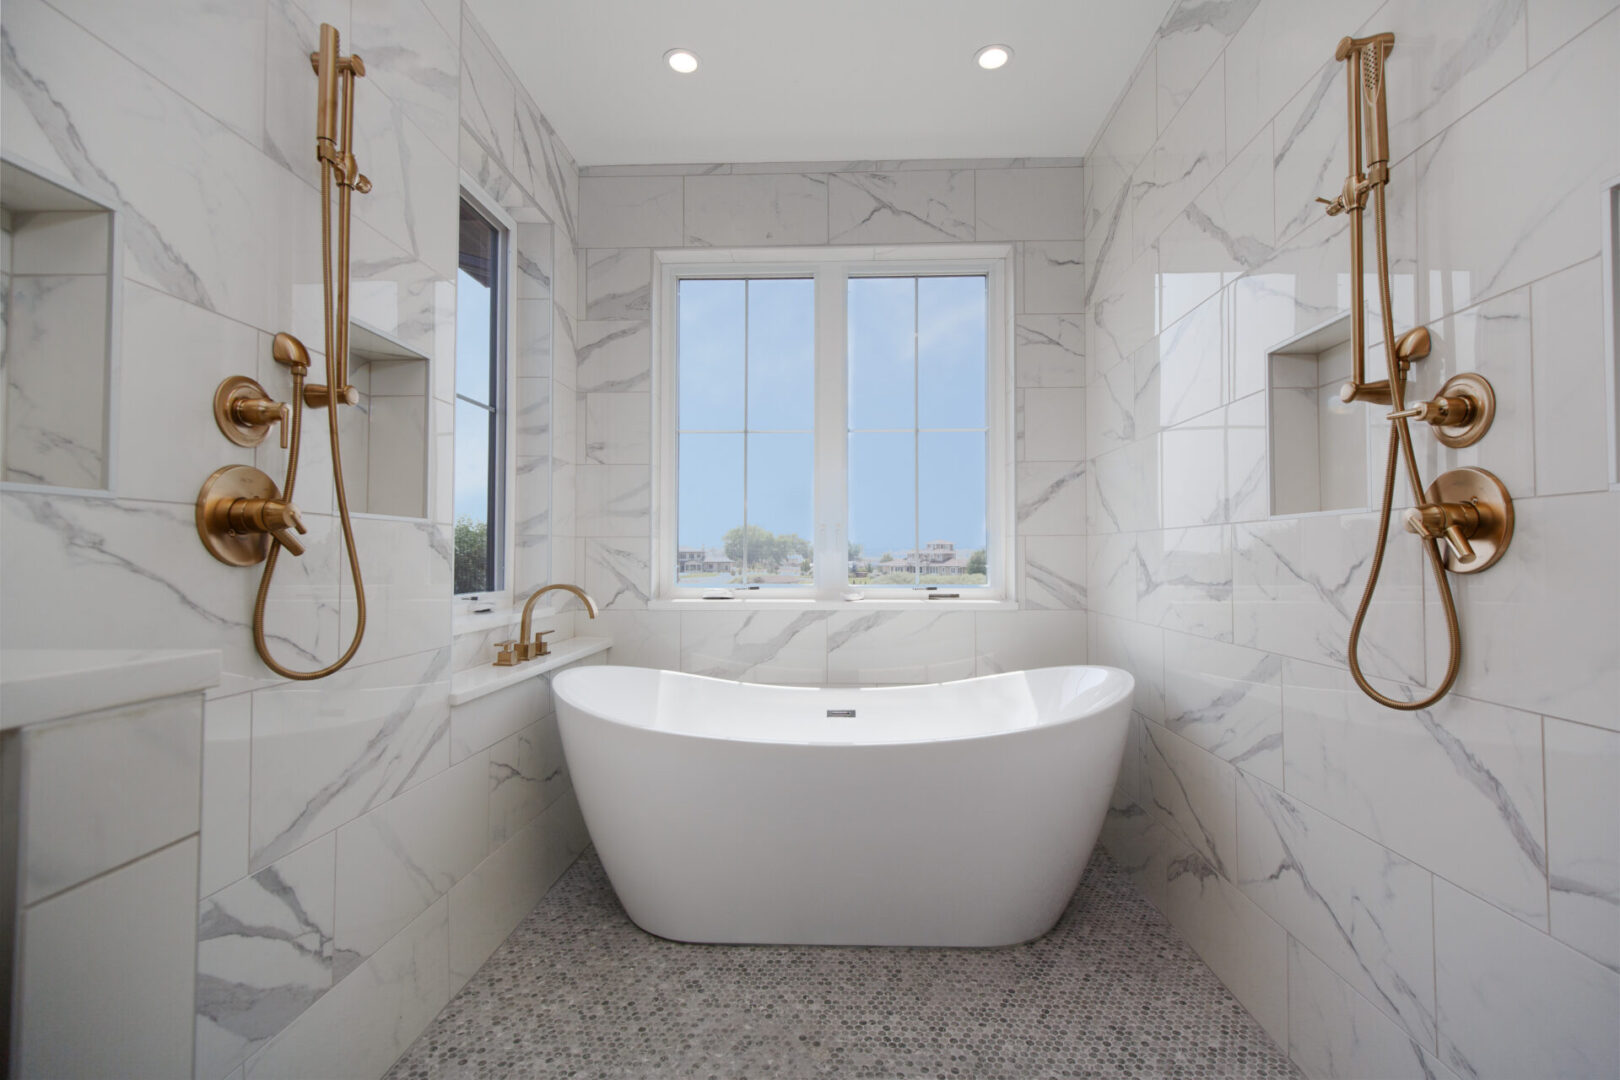 modern bathroom with tub and showers and marbled tiles